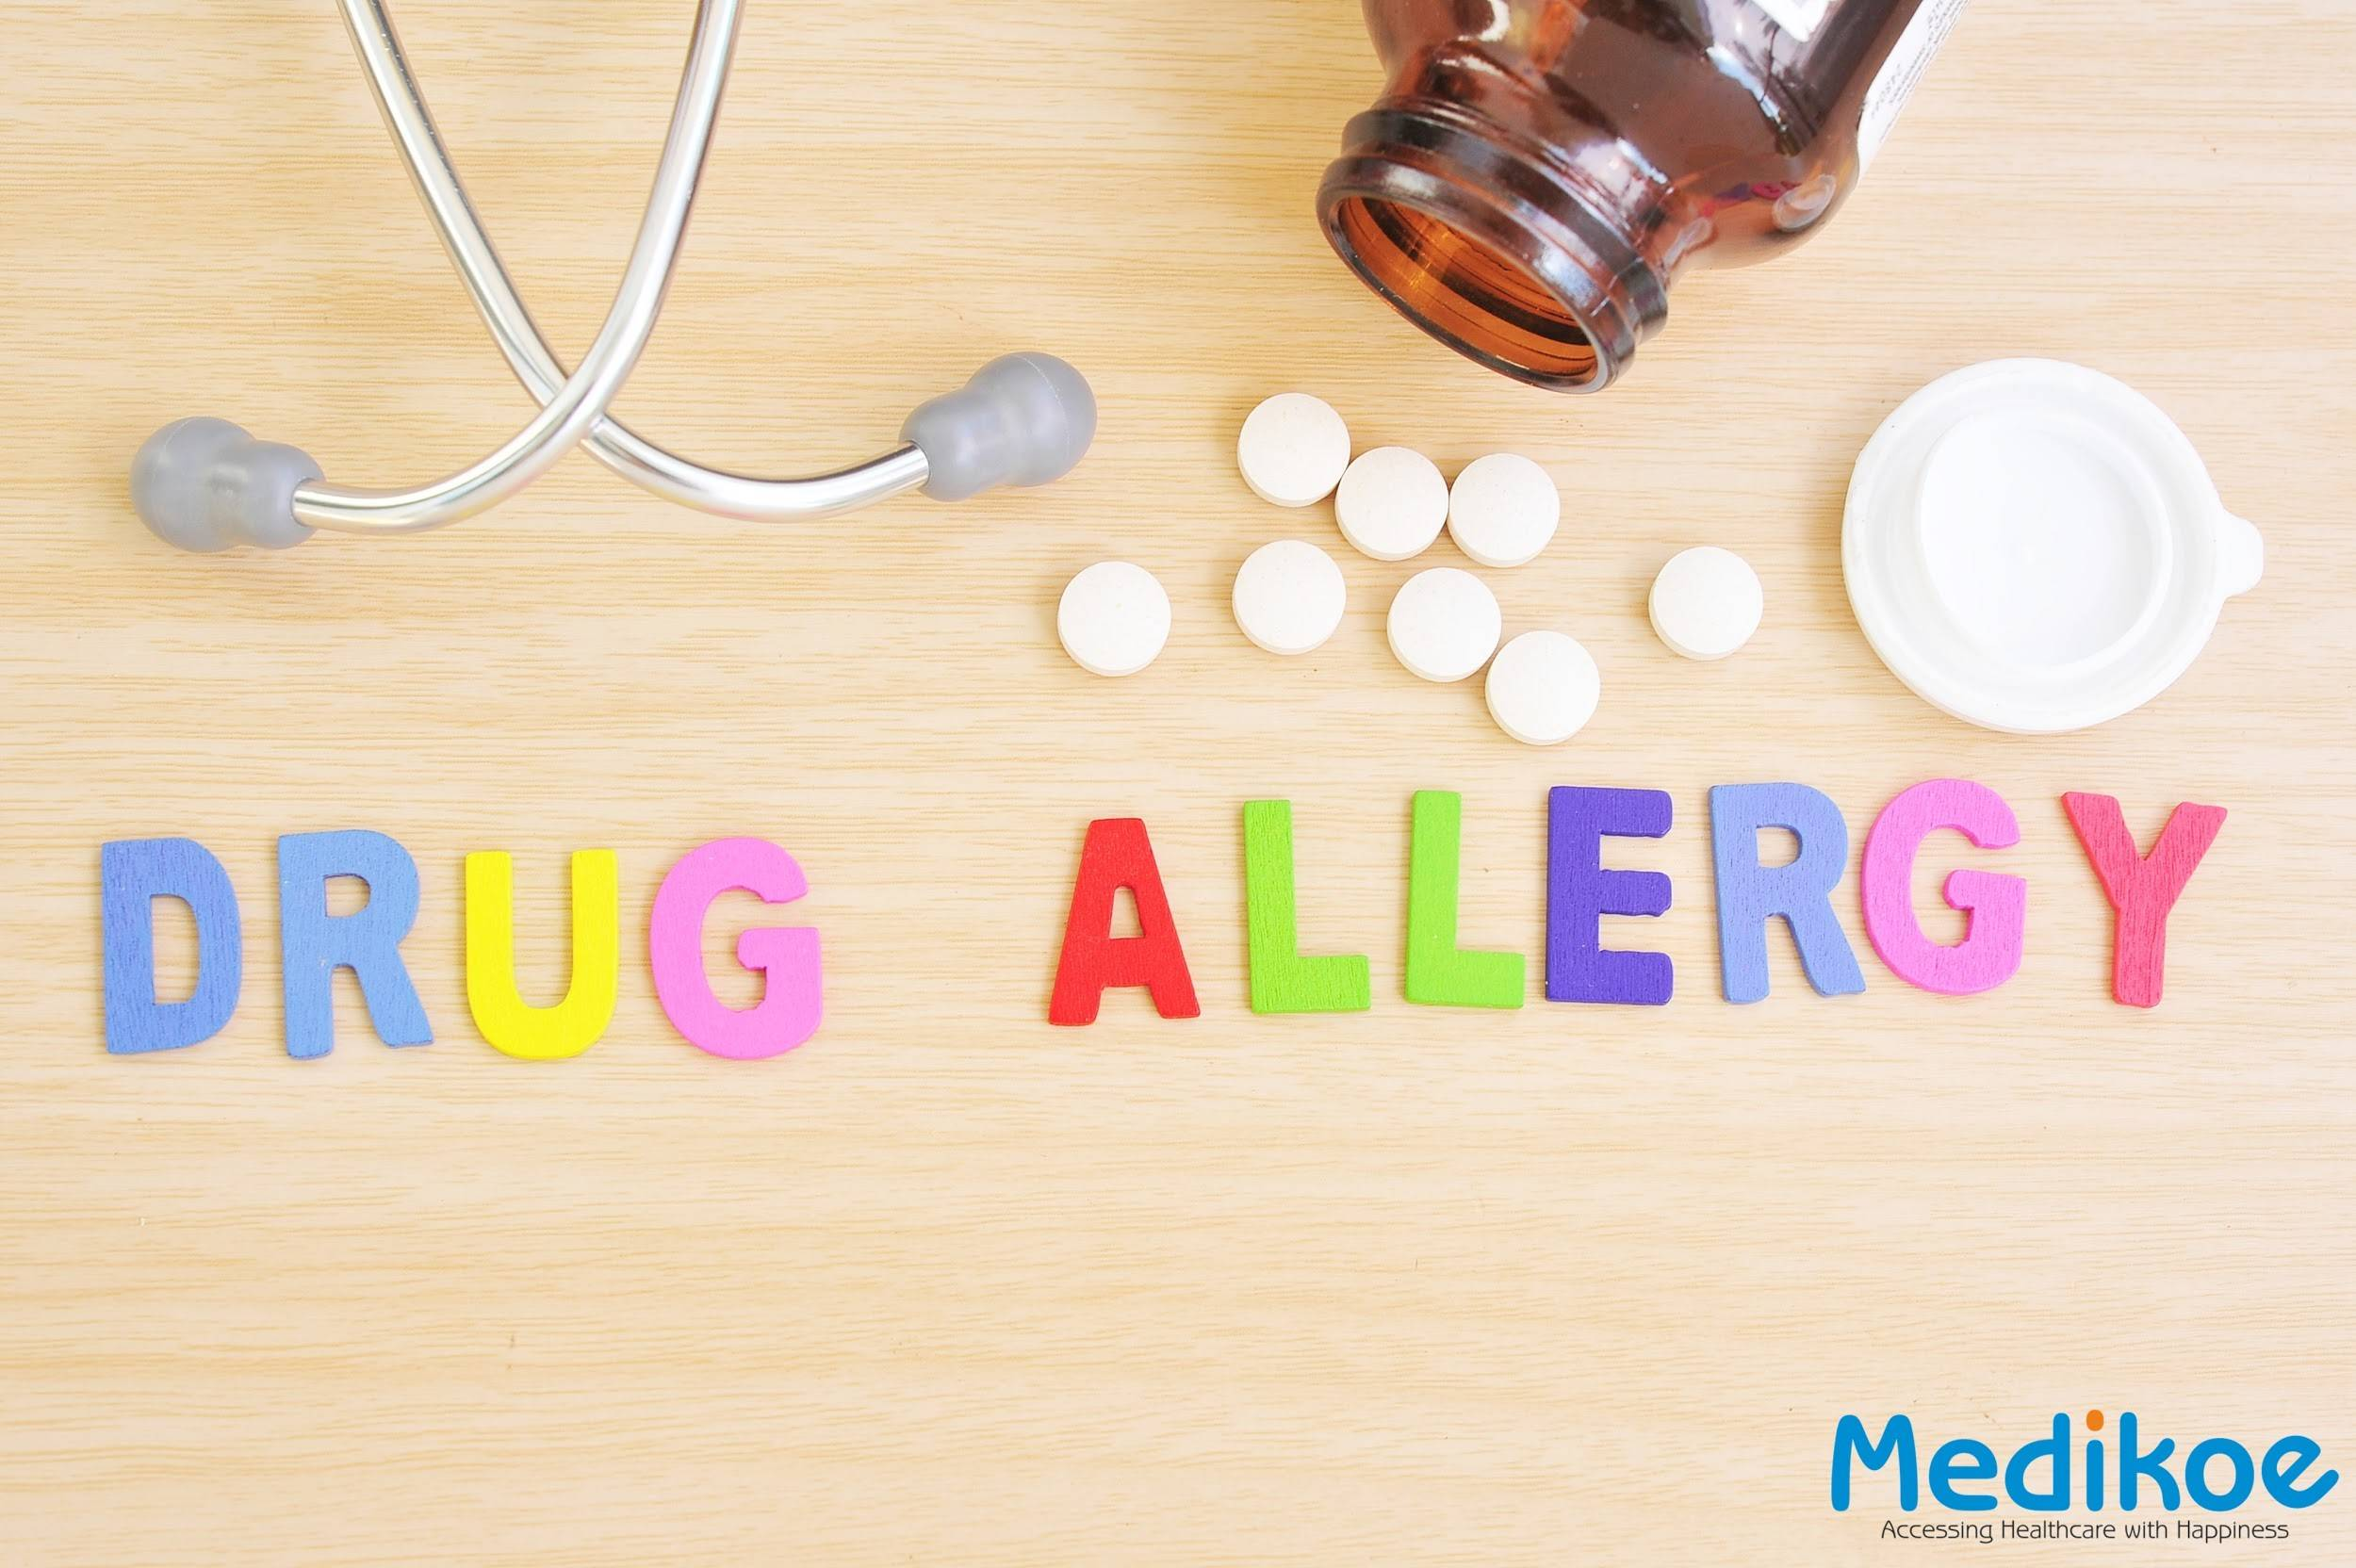 What is Drug Allergy?